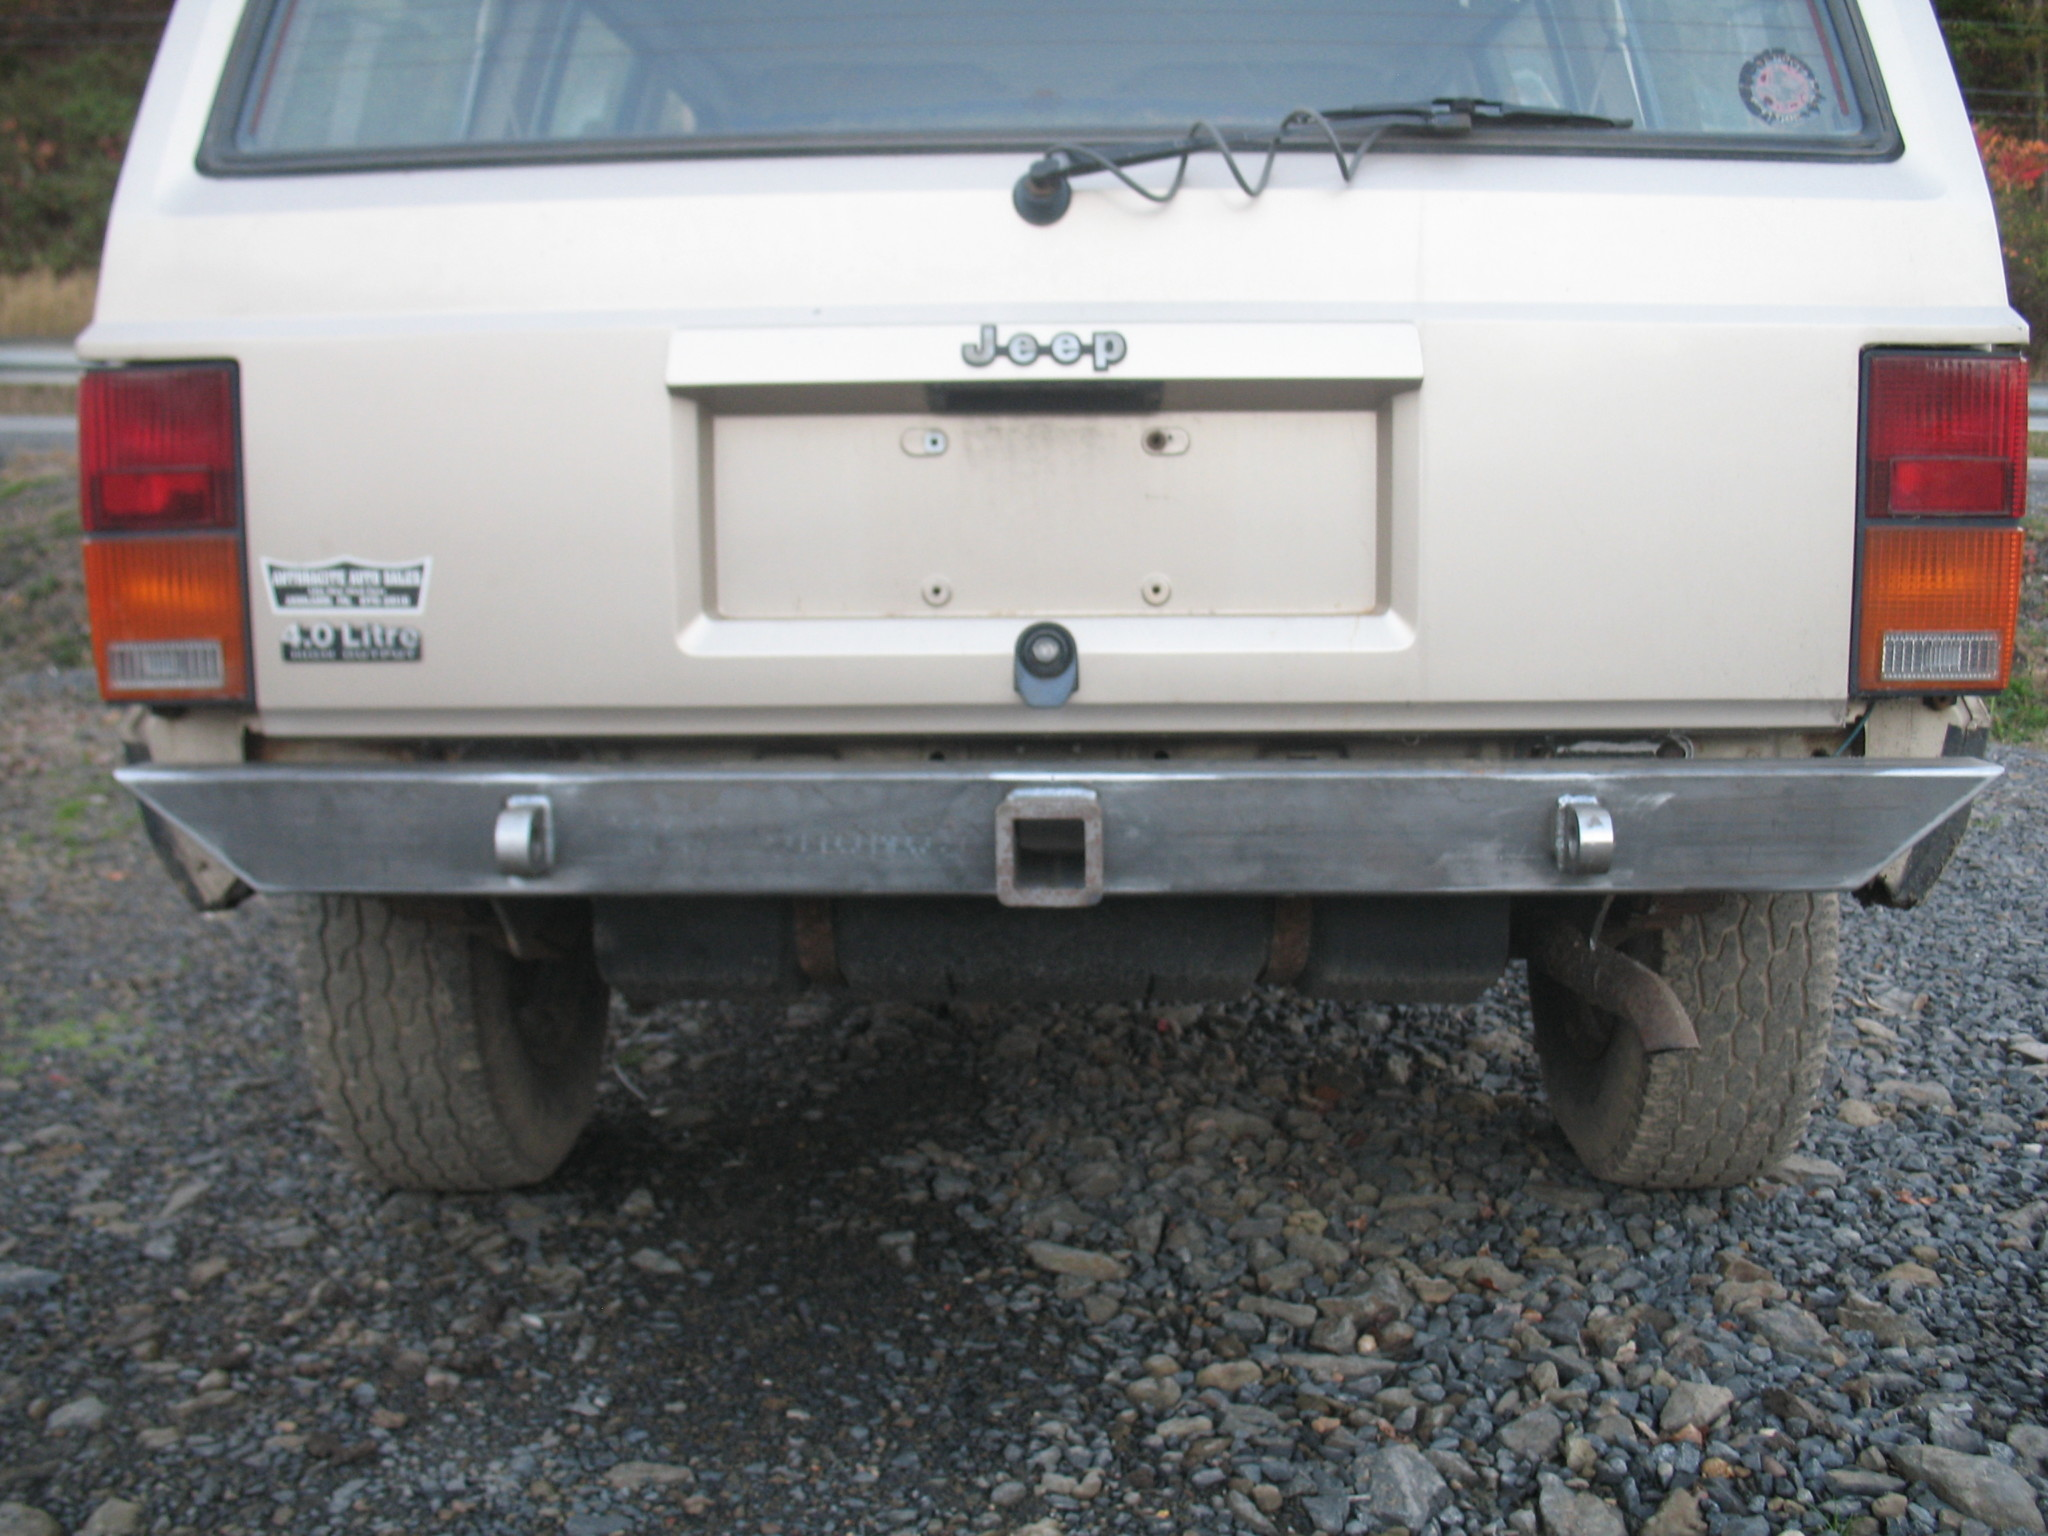 Jeep Grand Cherokee Off Road Bumper >> Affordable Rear Bumper-Jeep Cherokee XJ (84-01) - Affordable Offroad